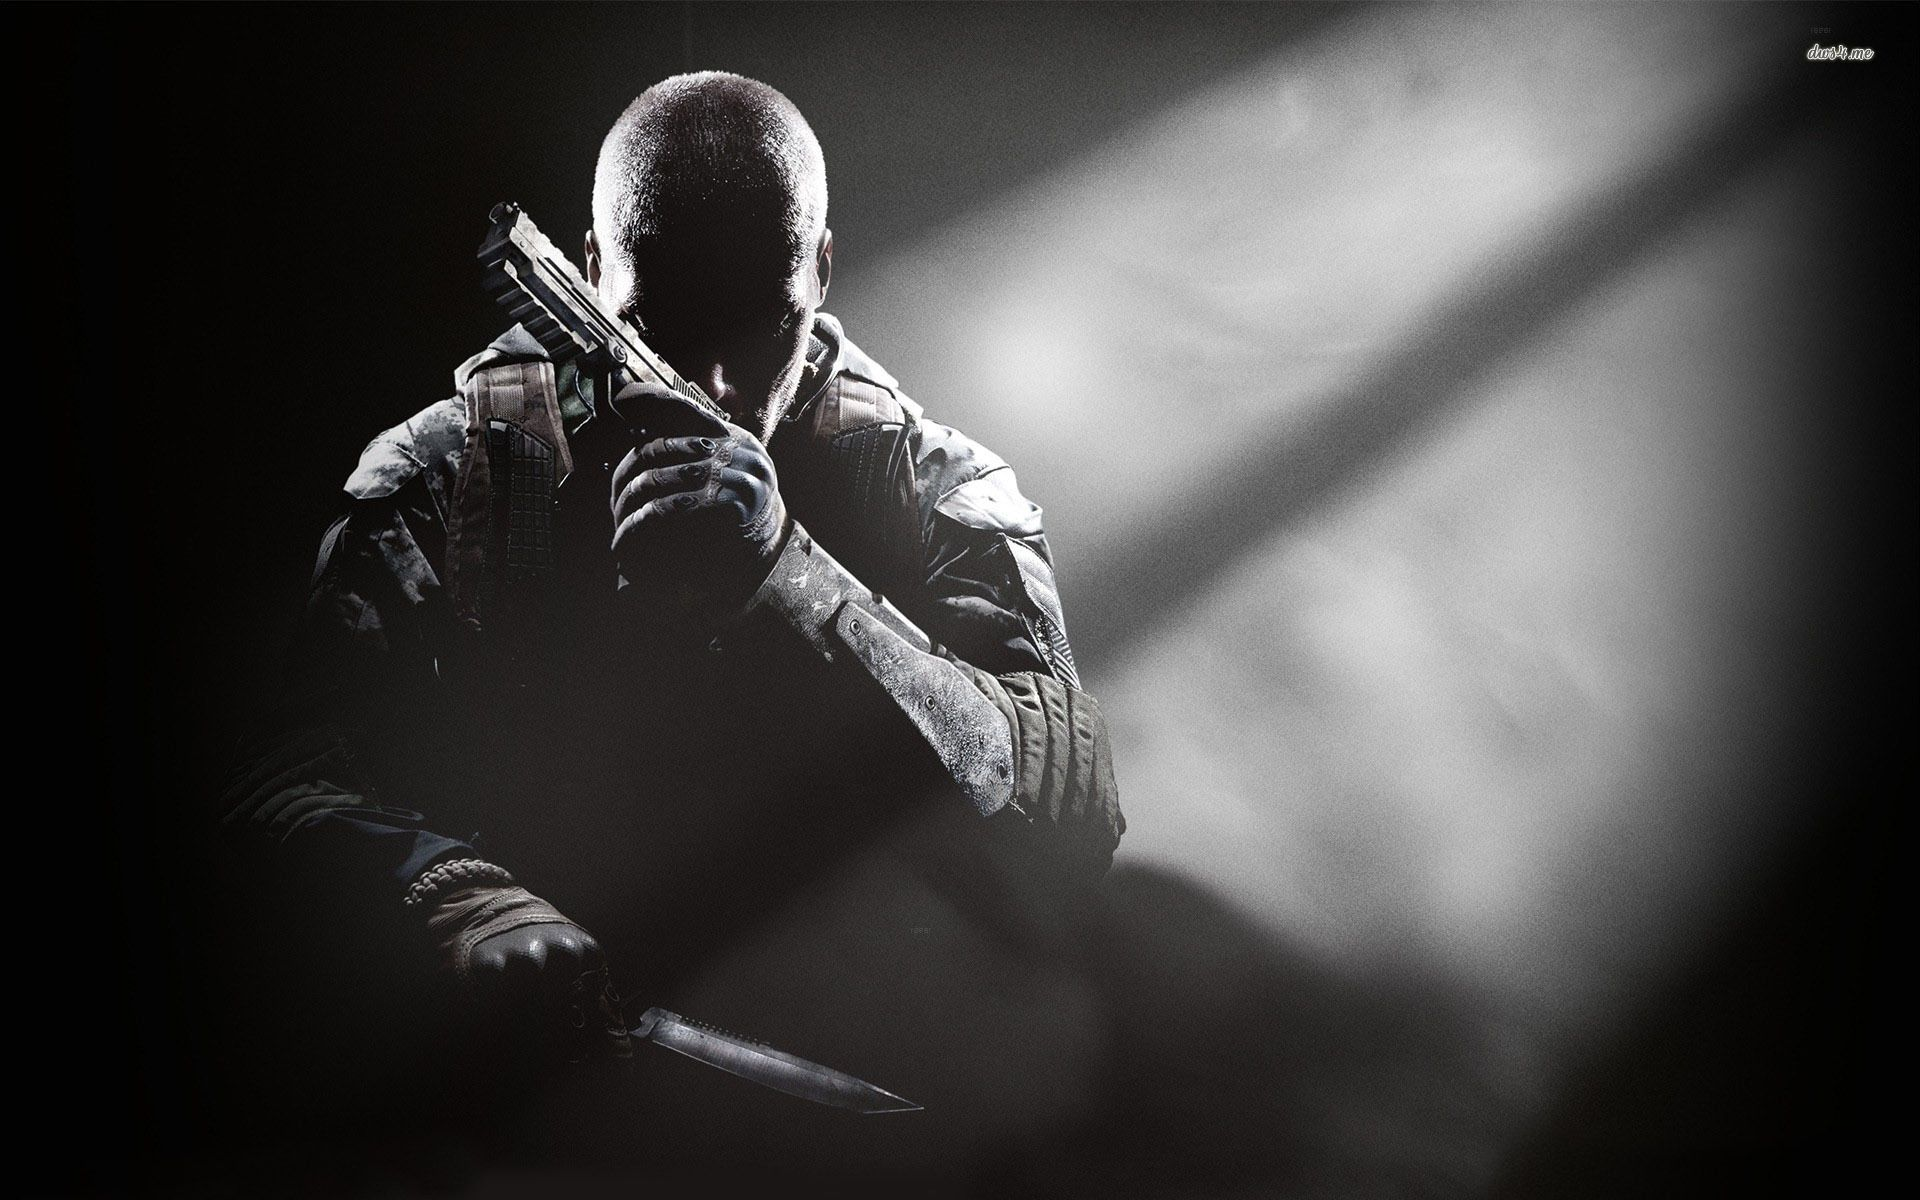 Call Of Duty Black Ops Ii Wallpapers Top Free Call Of Duty